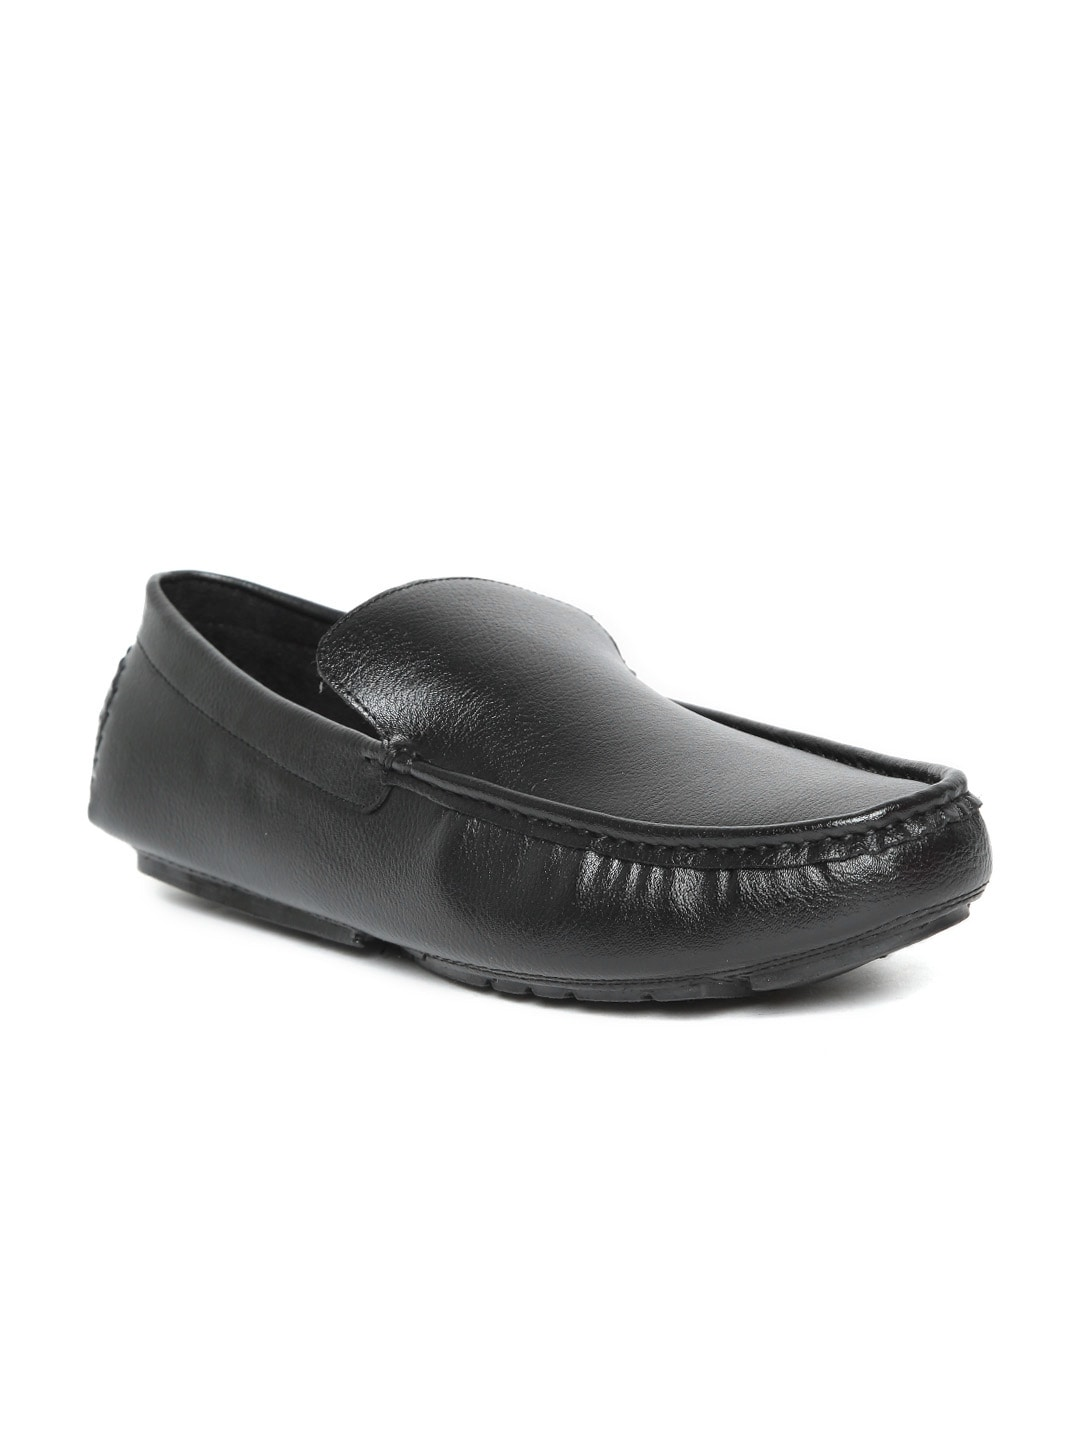 Driving Shoes Buy Driving Shoes Online In India